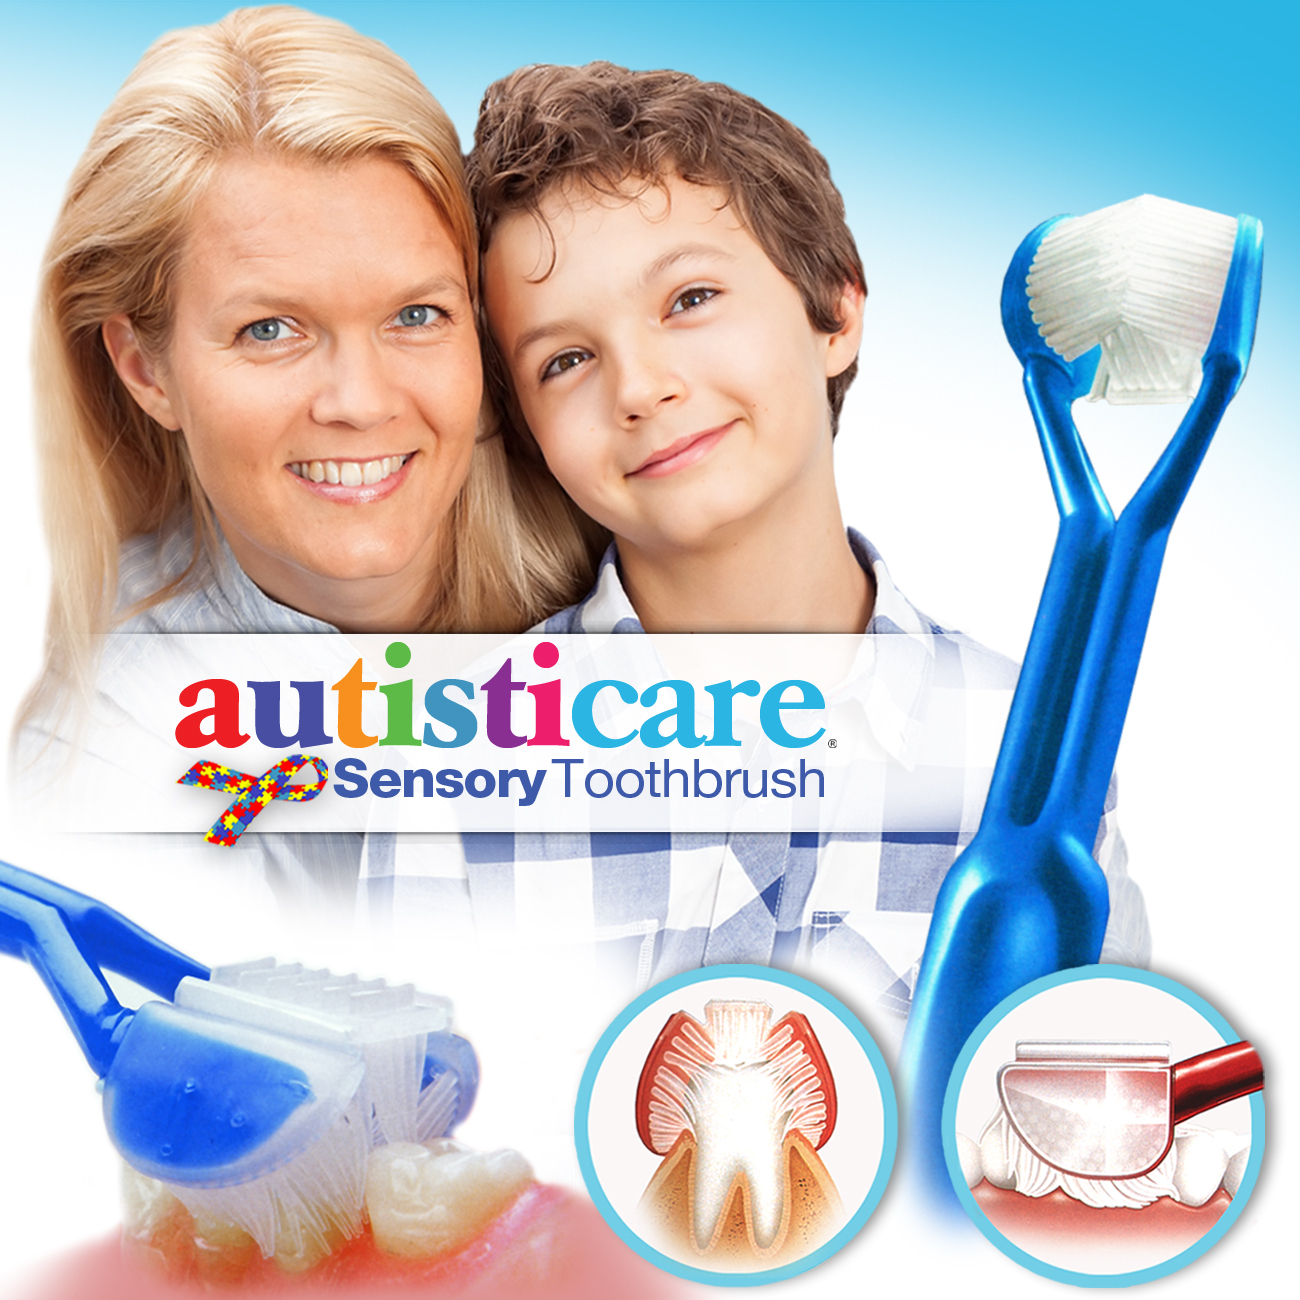 Autisticare Sensory Toothbrush :: Special Needs 3-Sided Toothbrush :: Fast, Easy & More Effective :: Complete Dental Care for Autism ASD Autistic ACT0001-EW